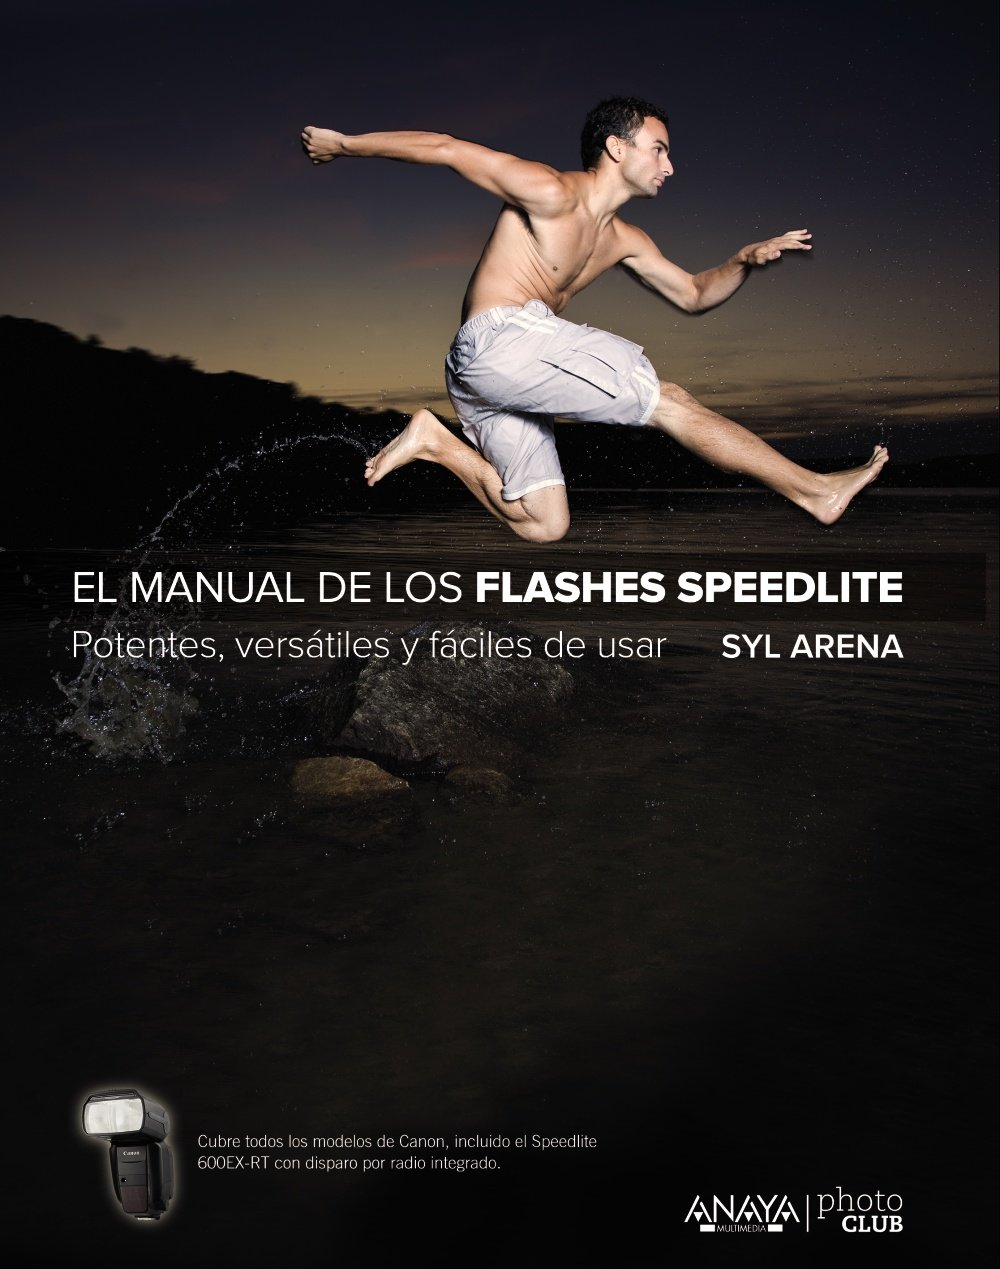 El Manual De Los Flashes Speedlite (Photoclub)